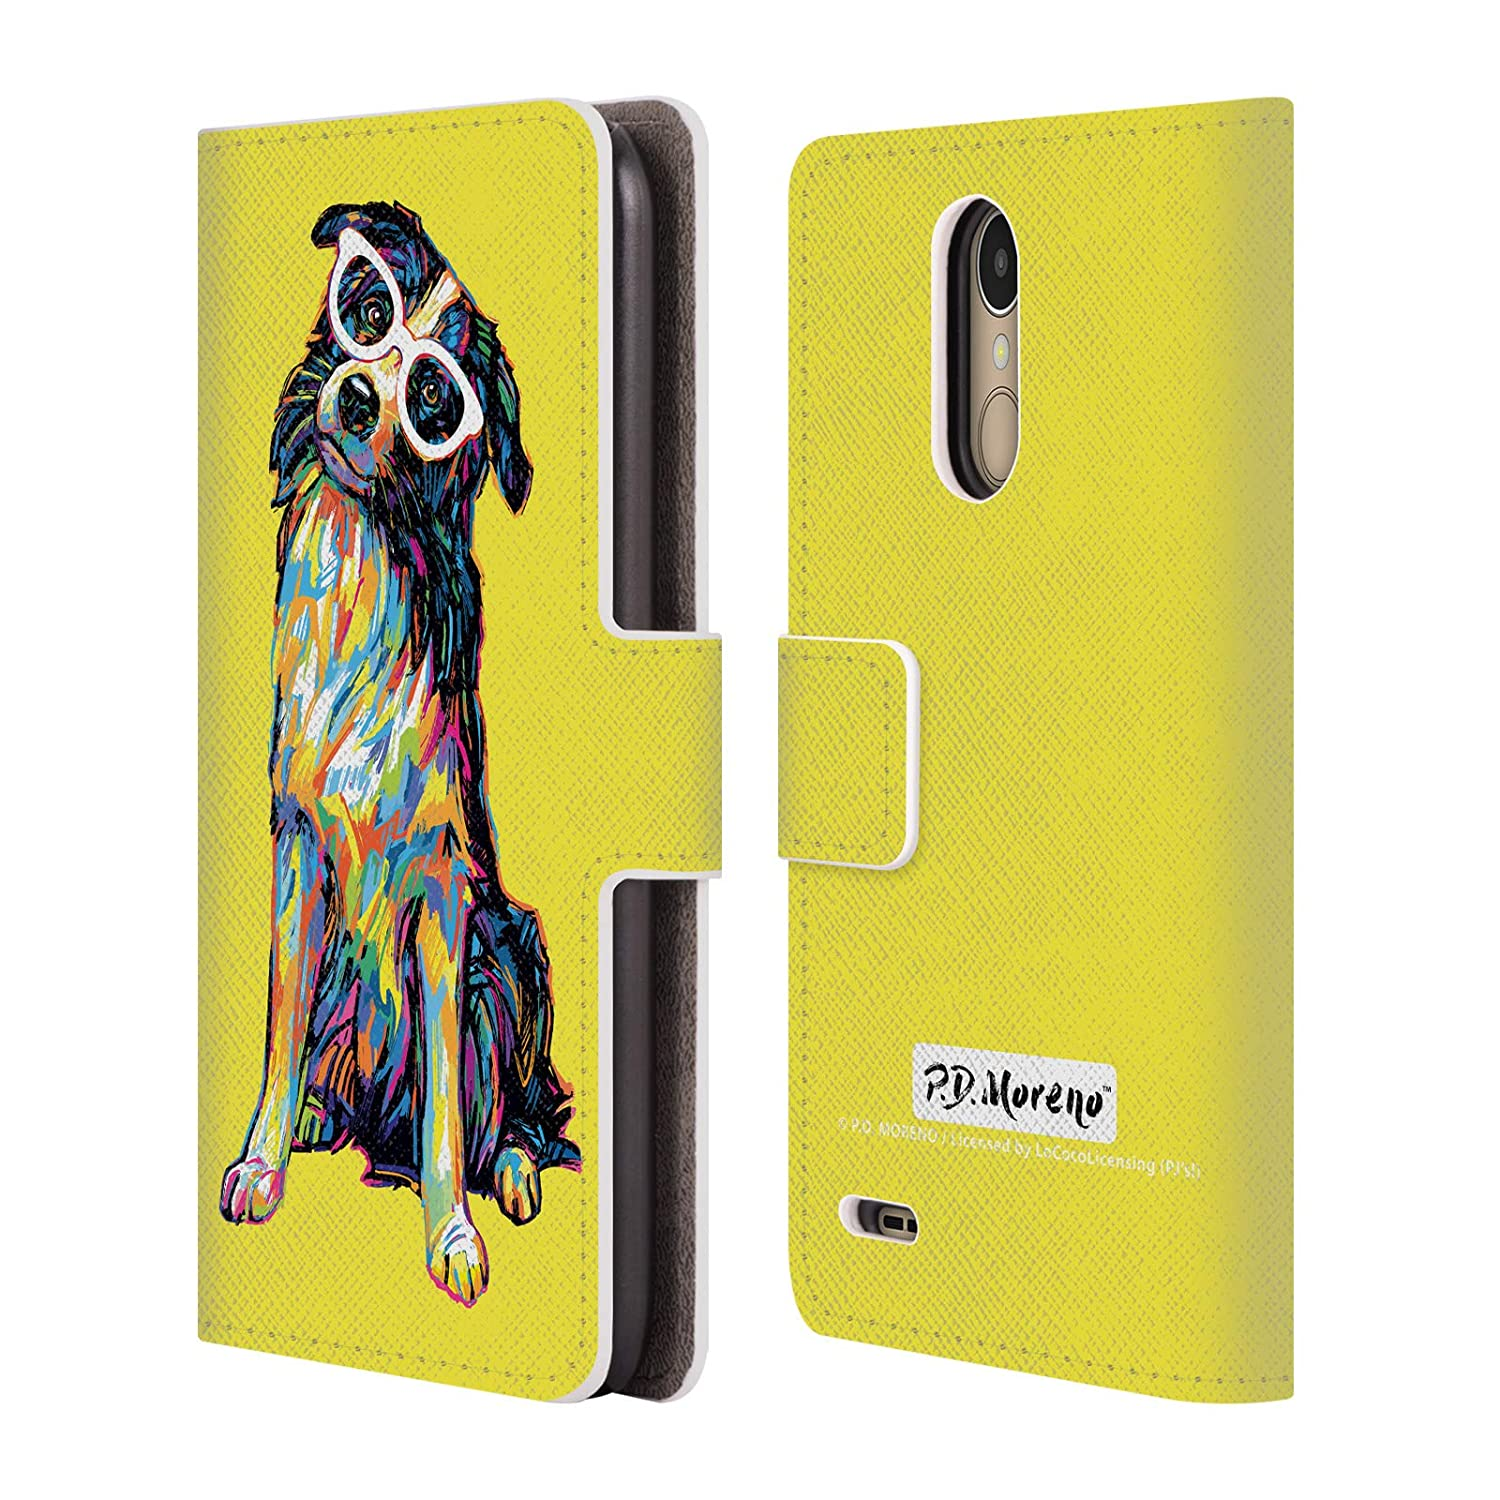 Official P.D. Moreno Border Collie Dogs Leather Book Wallet Case Cover Compatible for LG K10 (2017) / K20 Plus